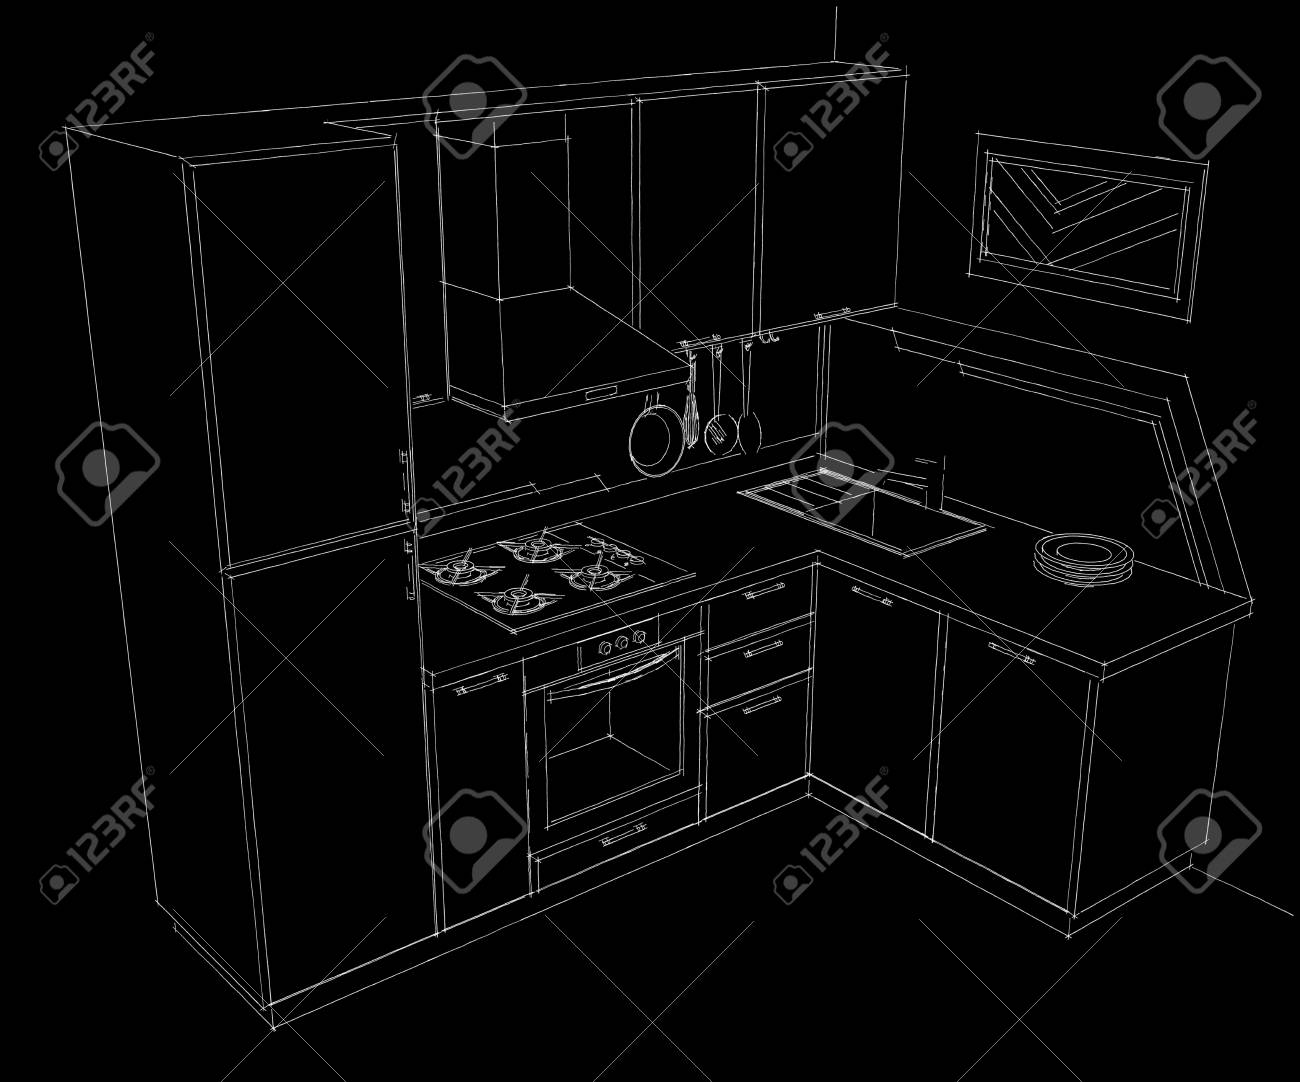 Black And White Hand Drawn Illustration Ofsmall Corner Kitchen Stock Photo Picture And Royalty Free Image Image 74102820